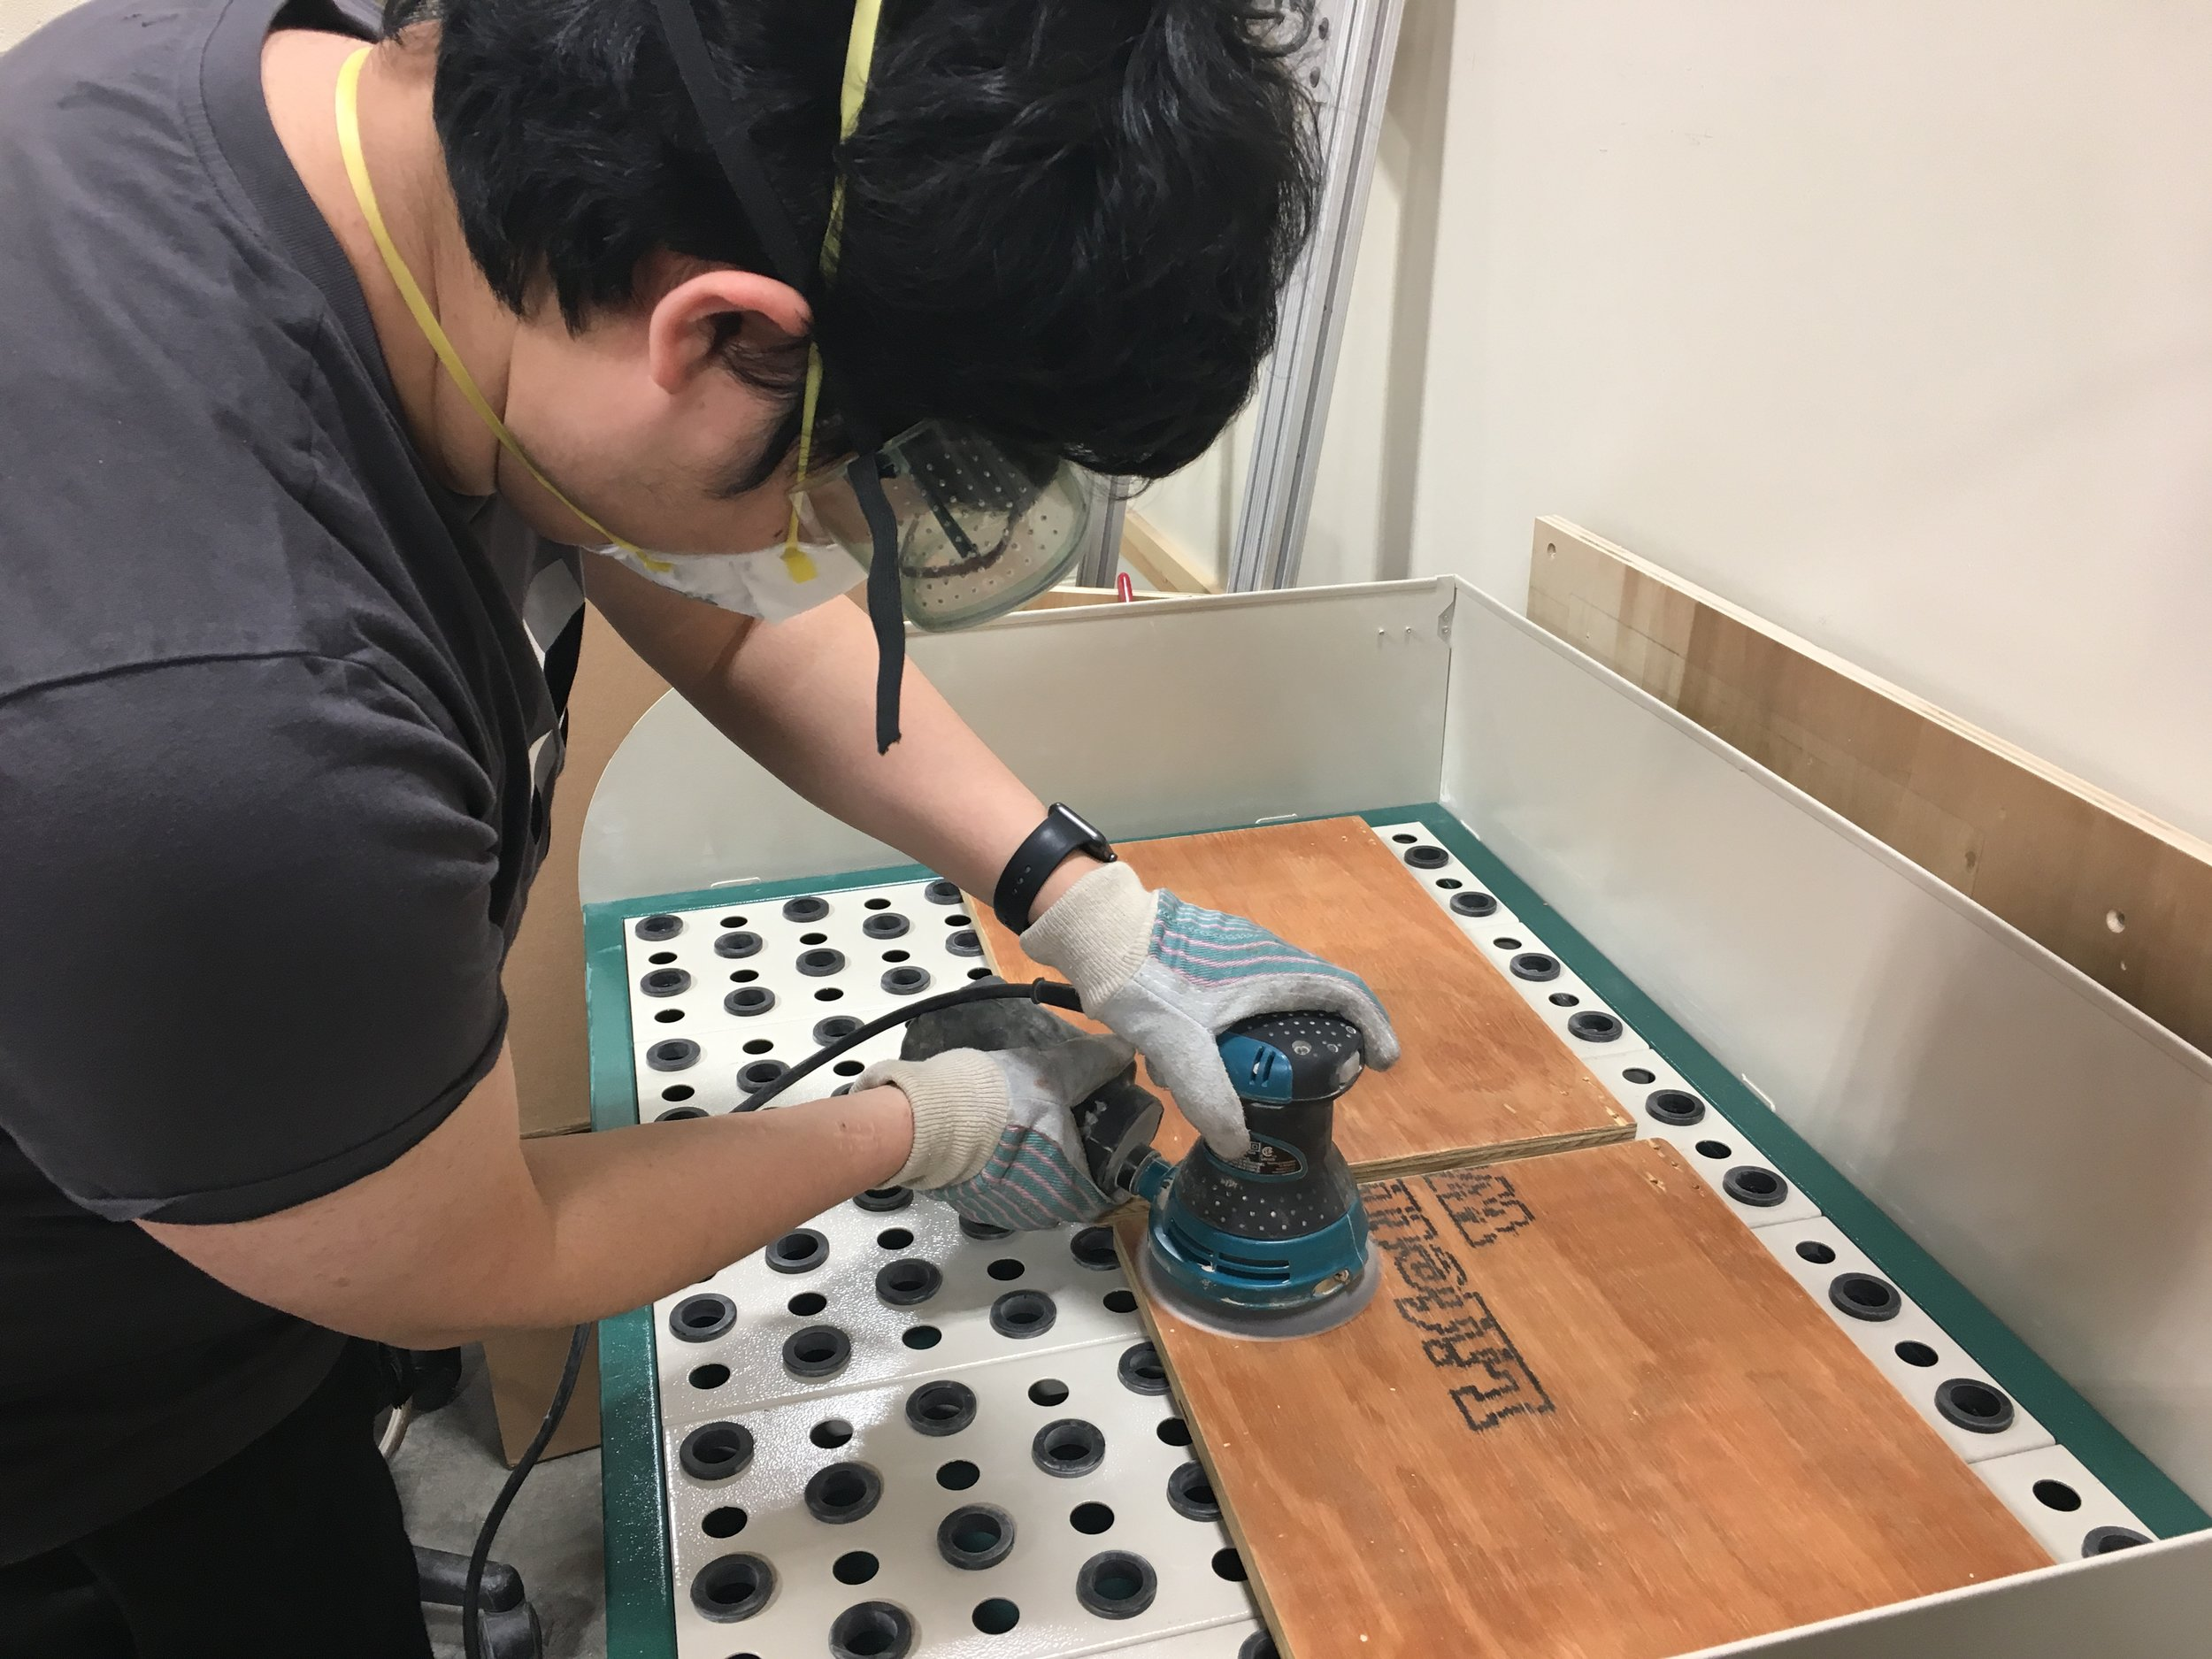 Using an orbital sander to smoothen the marine-grade plywood. (It was really bad plywood feat. Chris Bull)